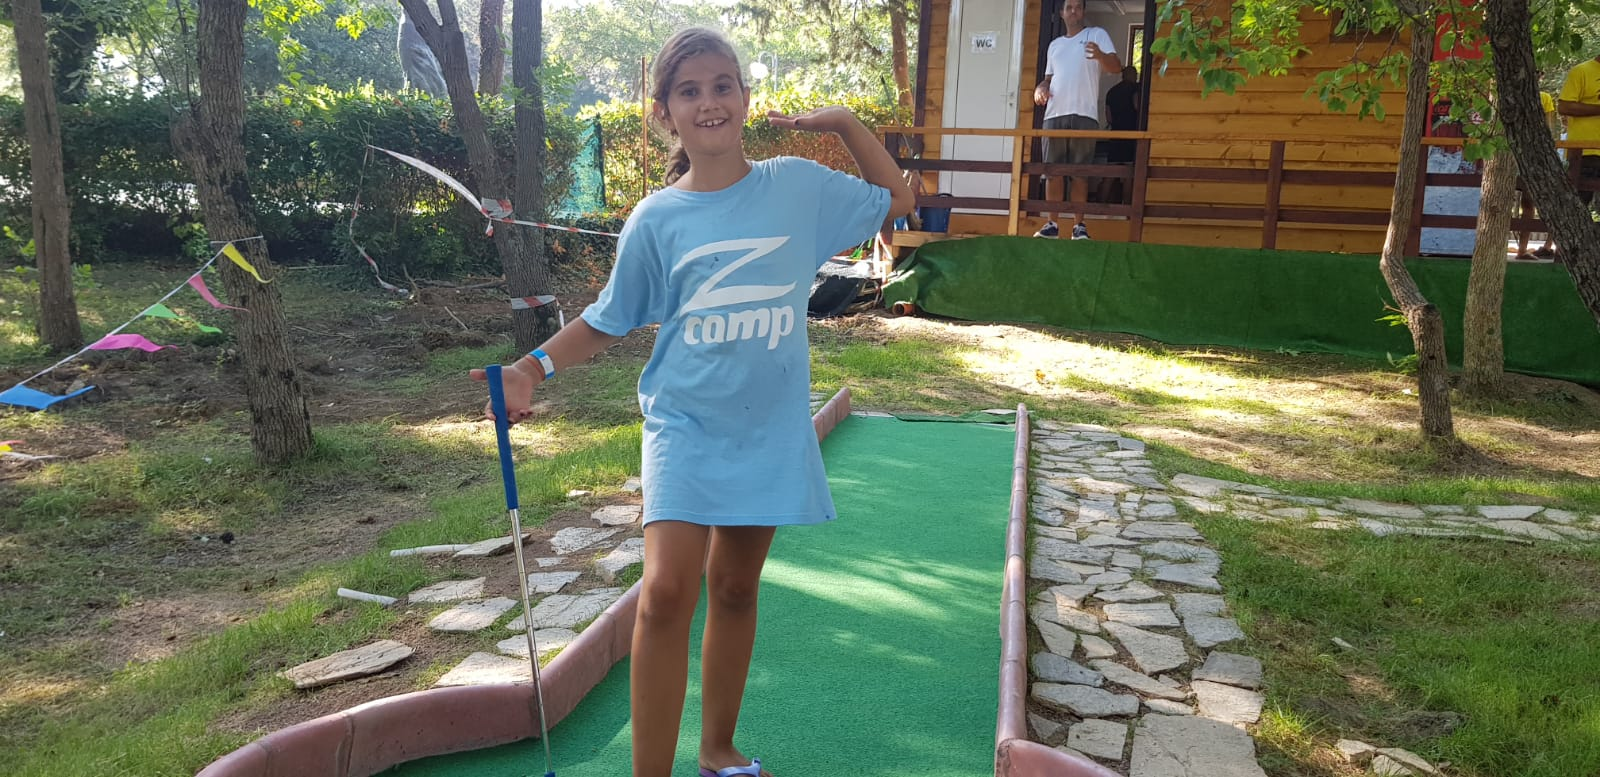 Z camp, day 19 - mini golf in Tsarevo - girl with T-shirt of Z camp